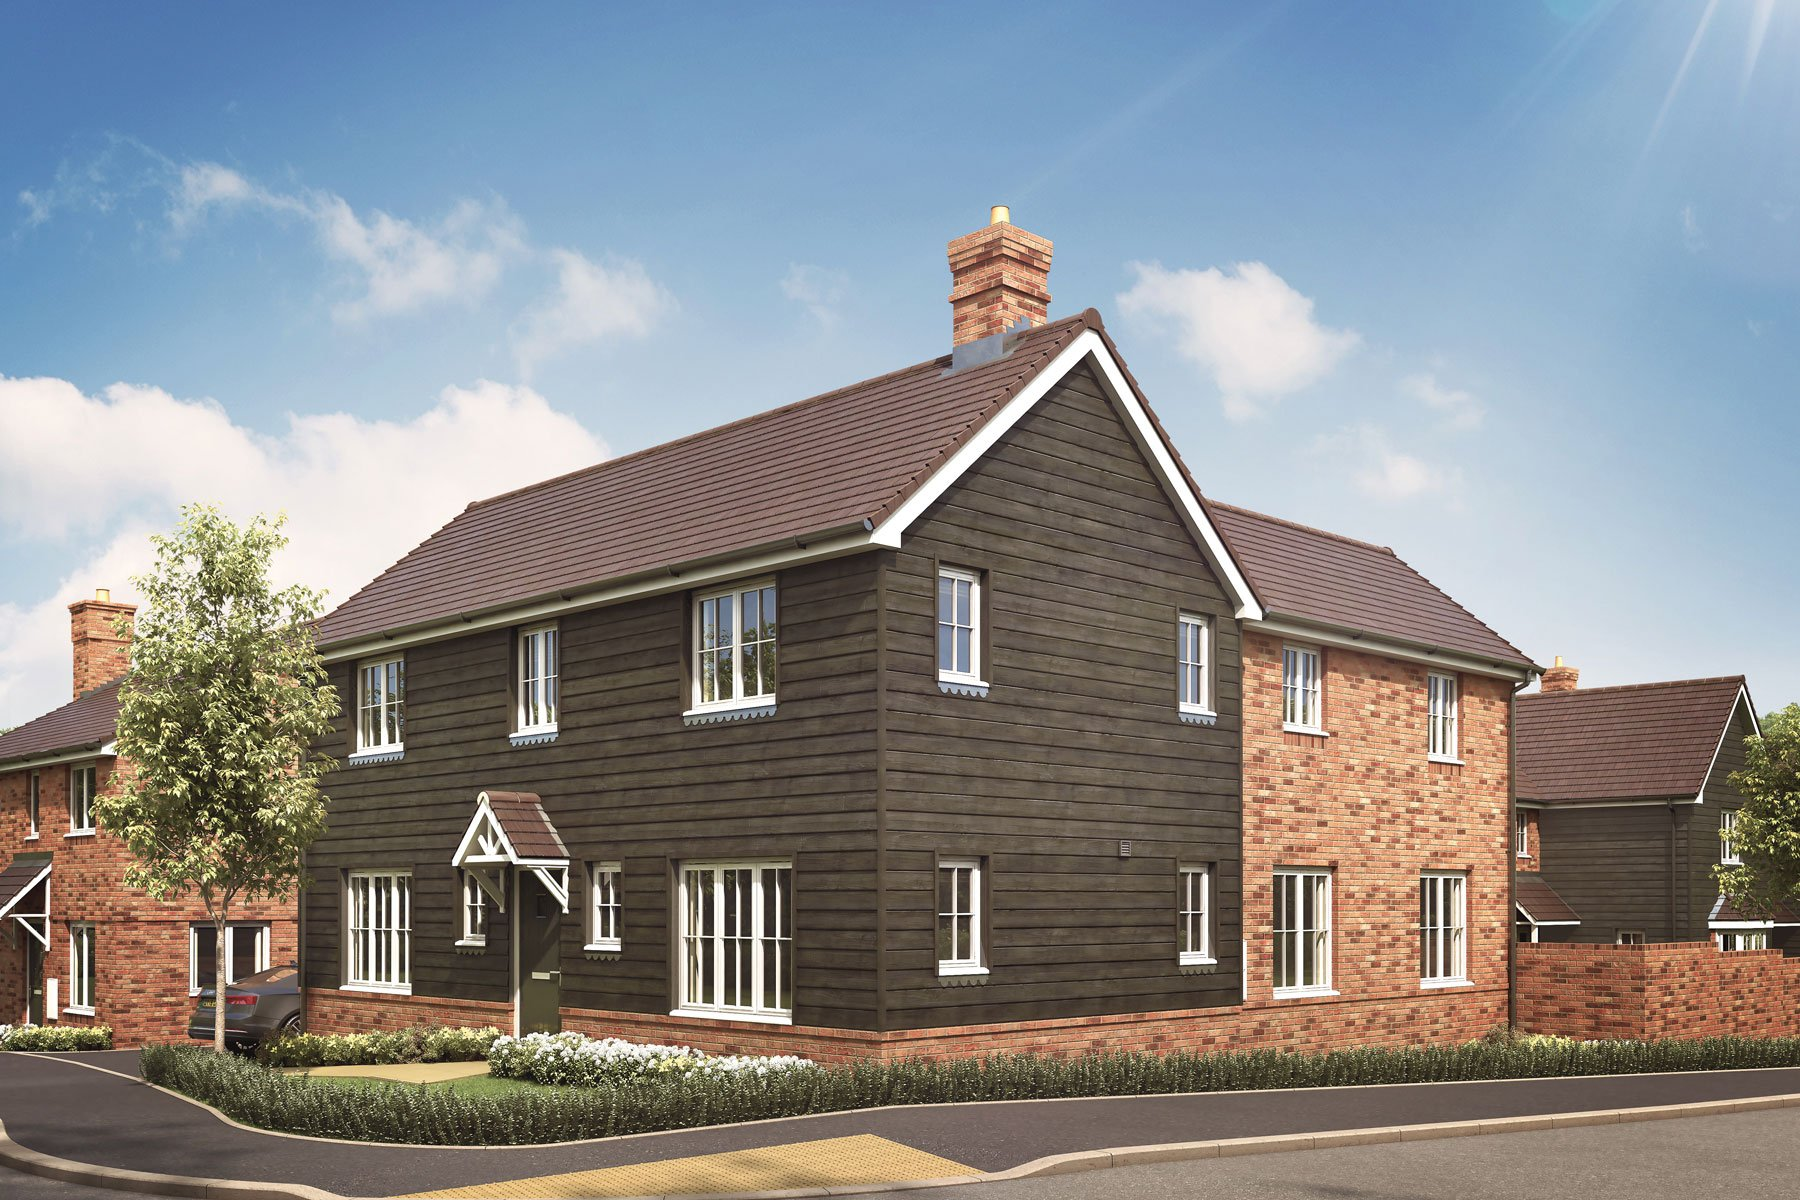 Artist's impression of a typical Langdale home